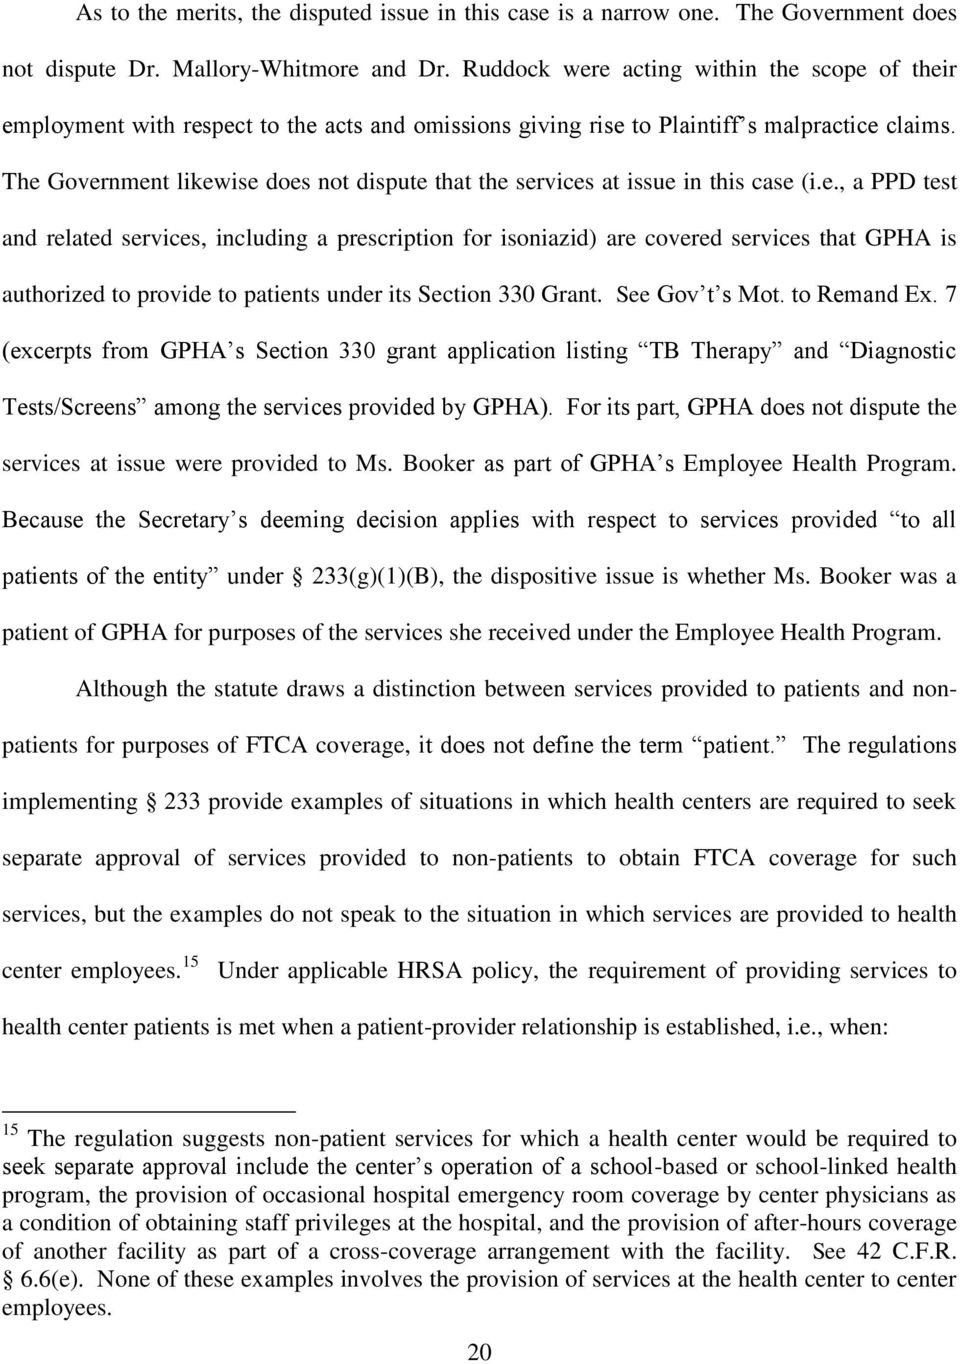 The Government likewise does not dispute that the services at issue in this case (i.e., a PPD test and related services, including a prescription for isoniazid) are covered services that GPHA is authorized to provide to patients under its Section 330 Grant.